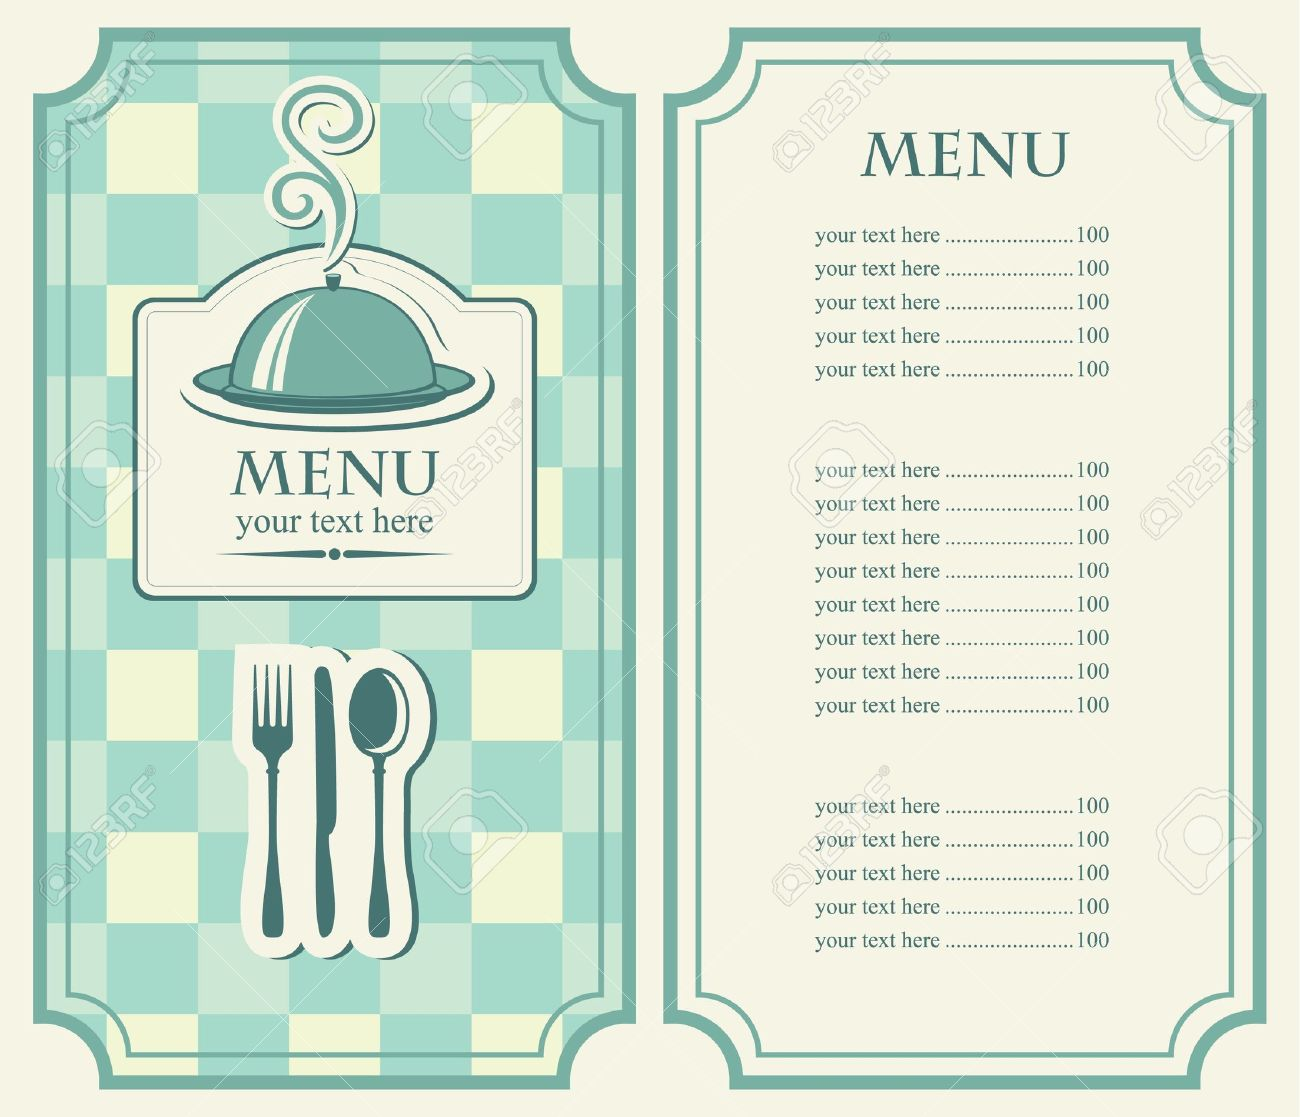 menu for cafe with covered tray and steam royalty free cliparts rh 123rf com menu clip art black and white menu clip art free